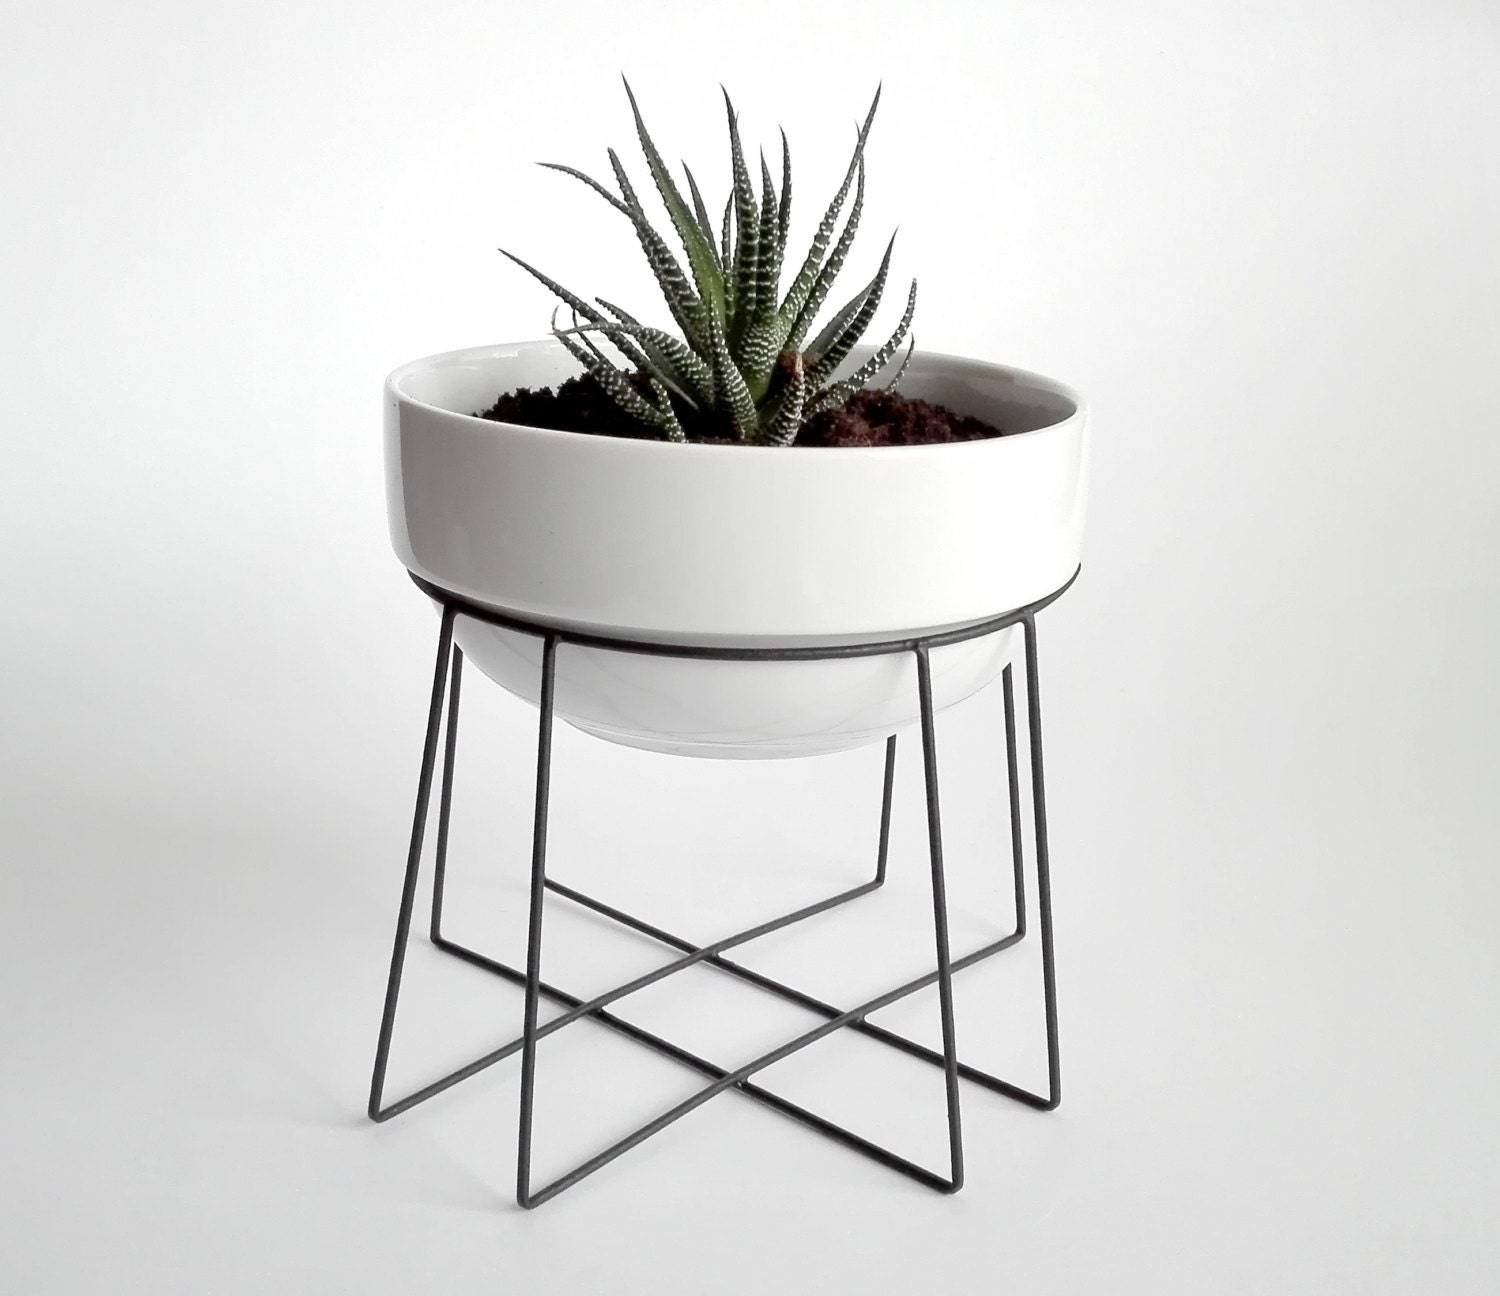 Geometric Plant Stand Spider With A Ceramic White